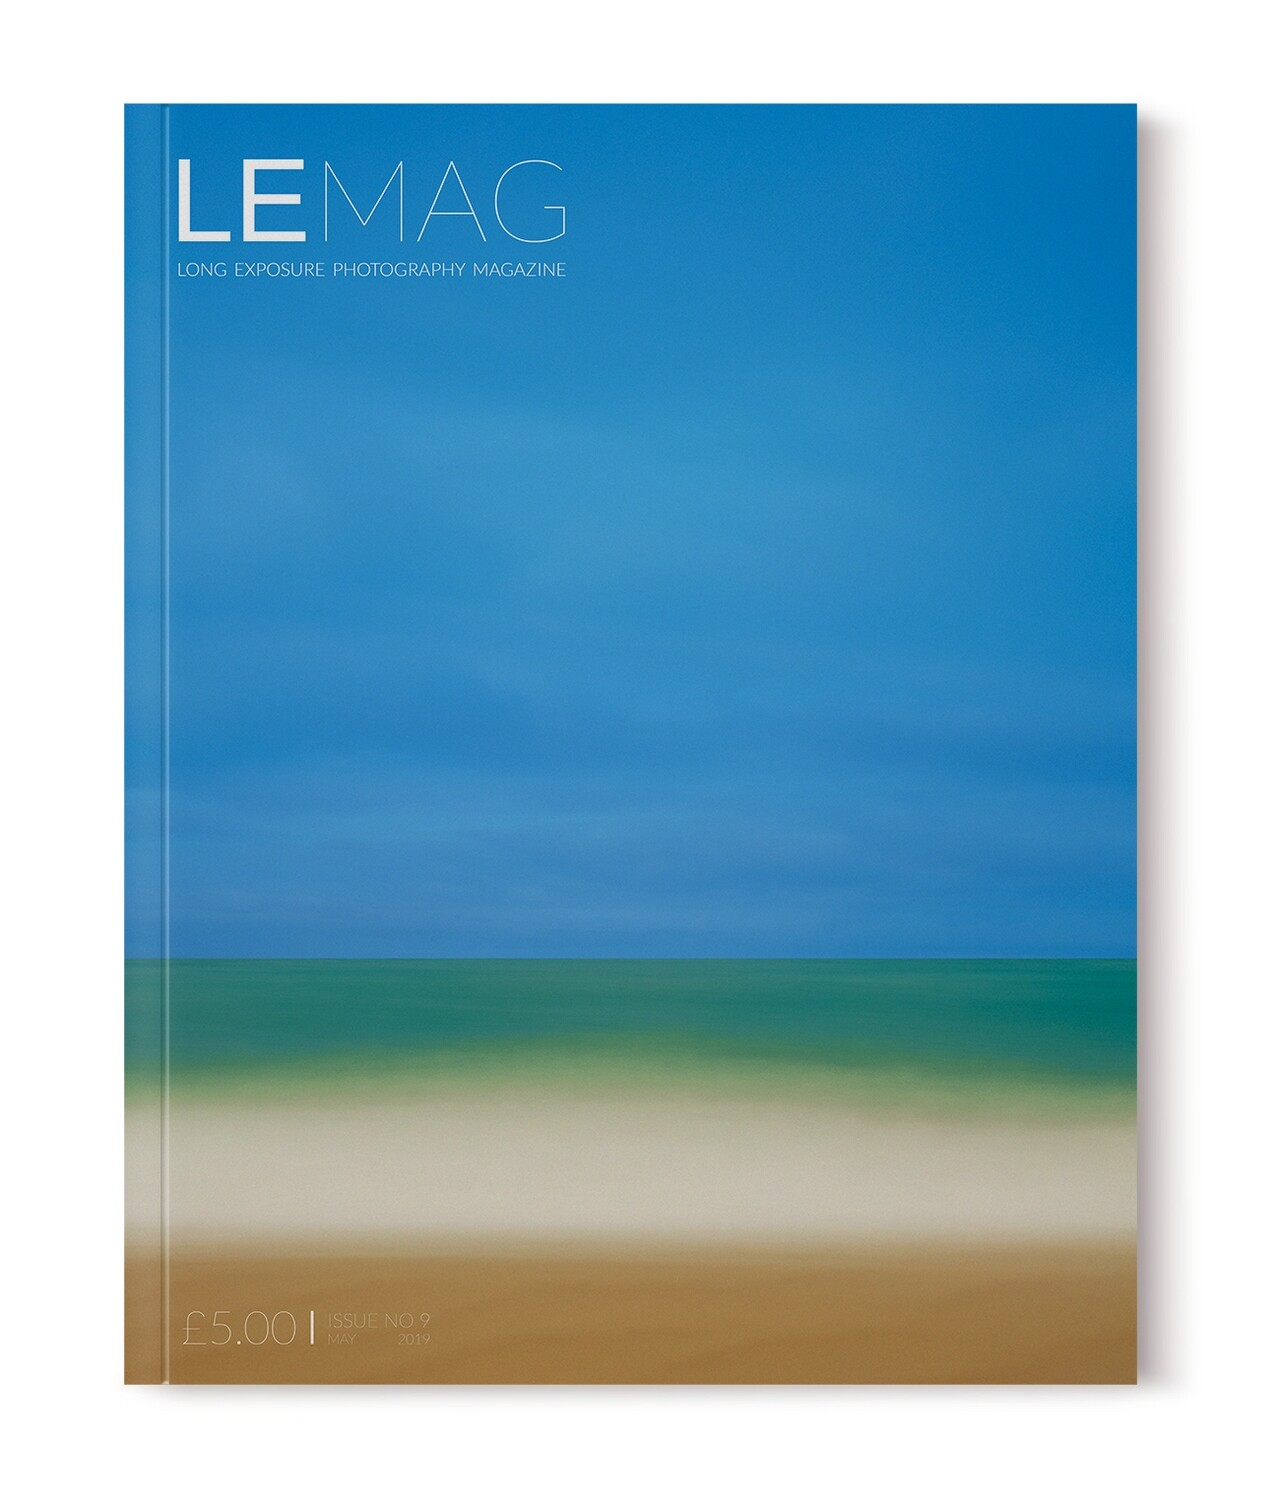 LEMAG May 2019 issue